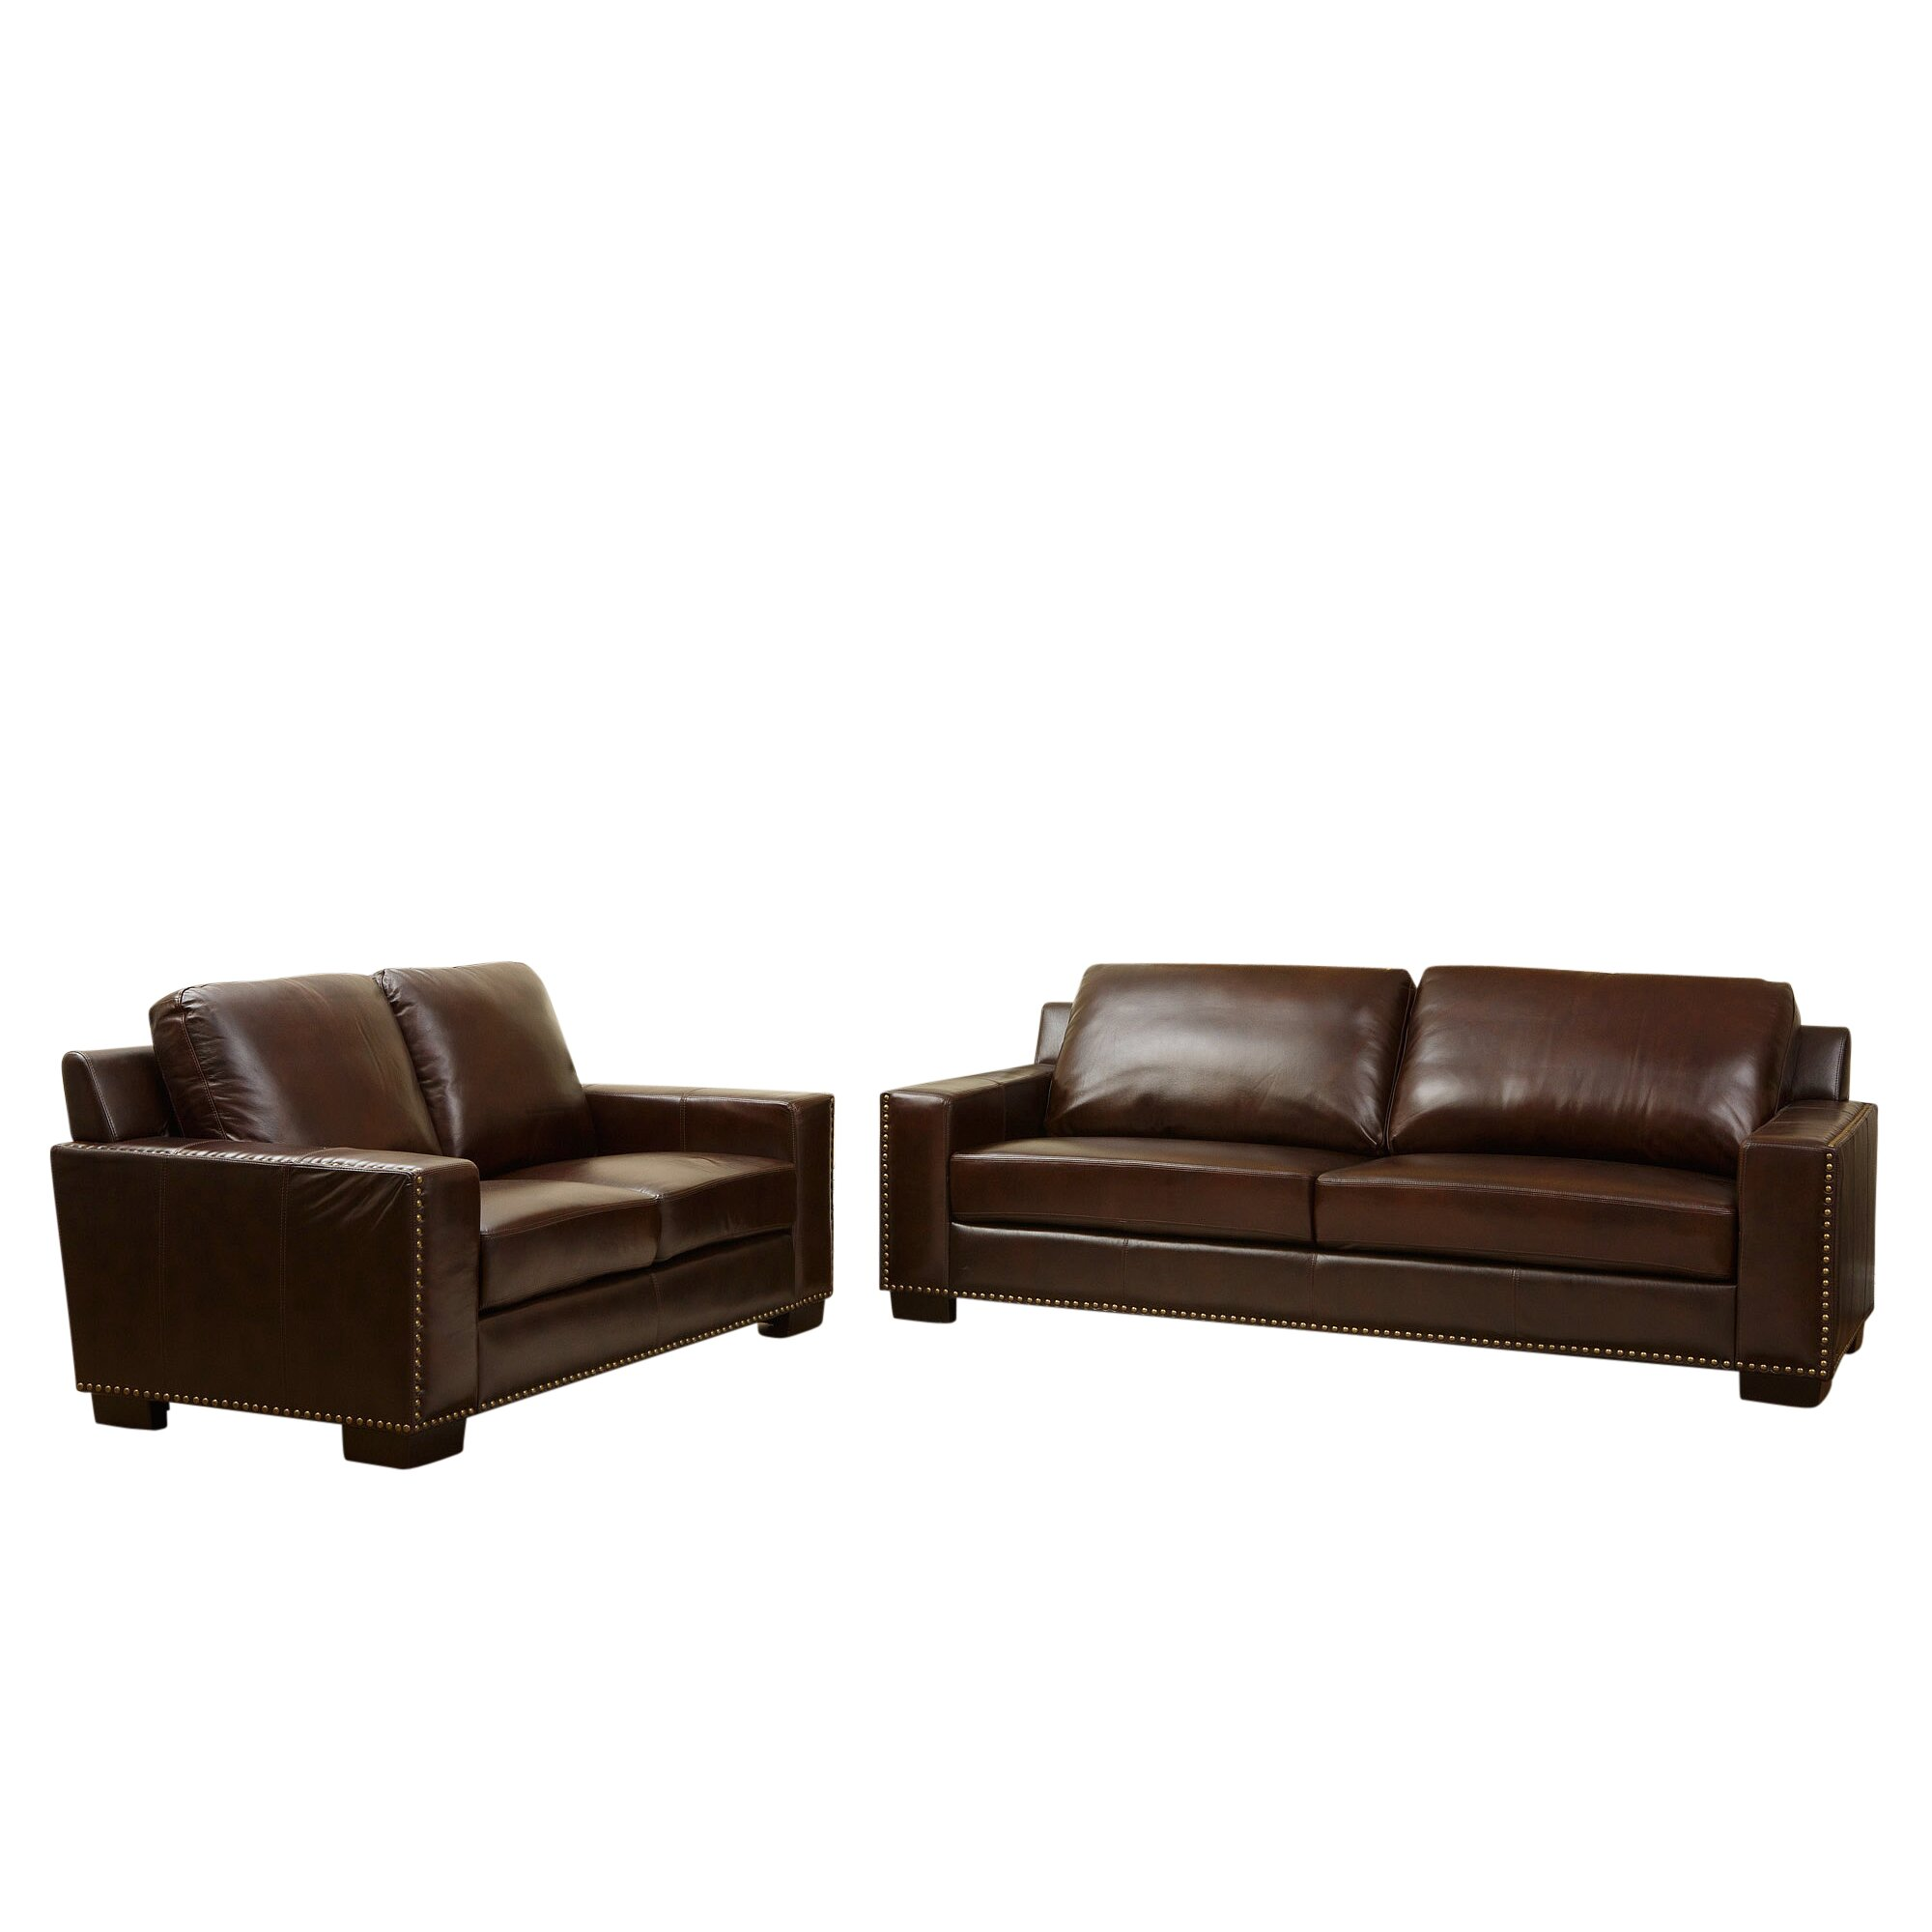 Darby Home Co William Leather Sofa And Loveseat Set